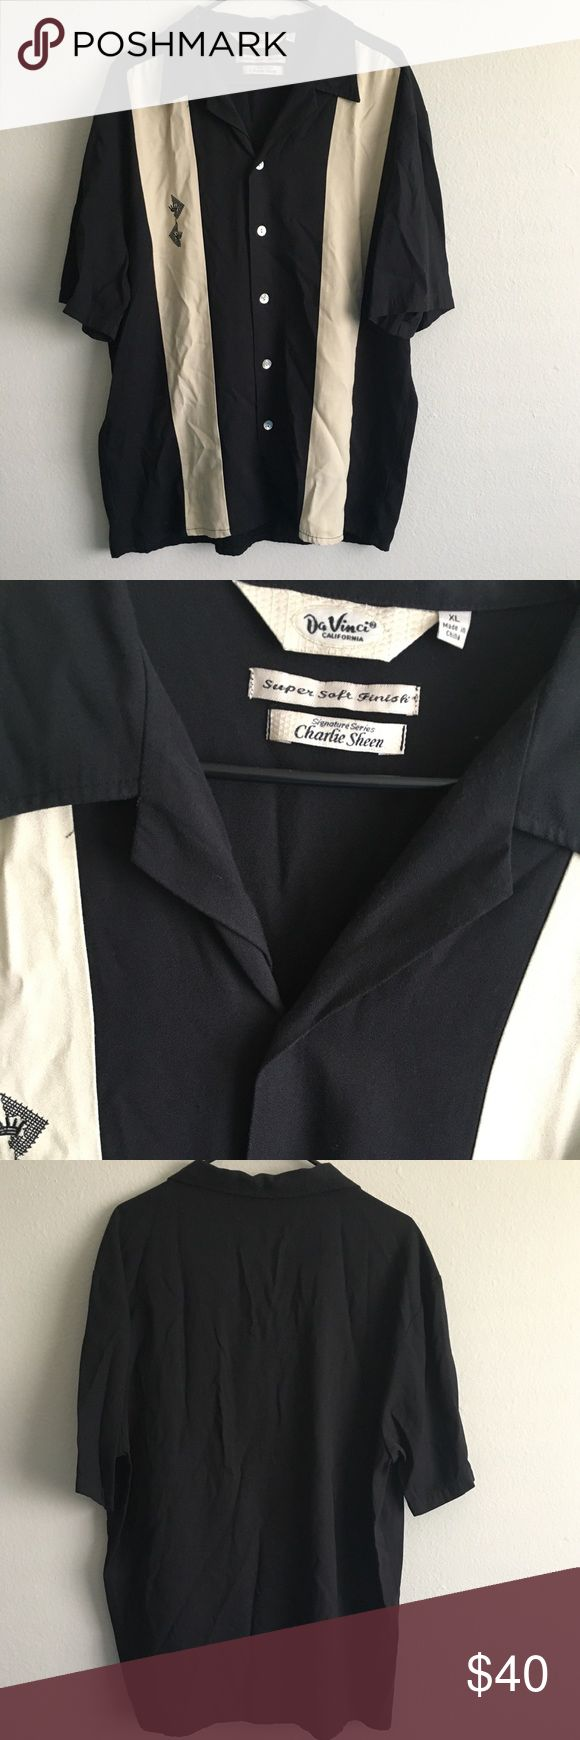 DaVinci XL Charlie Sheen signature series This is the shirt of a winner. Pairs nice with a basic pair of shorts while lounging around your Malibu beach house. No rips or stains, like new. davinci Shirts Casual Button Down Shirts